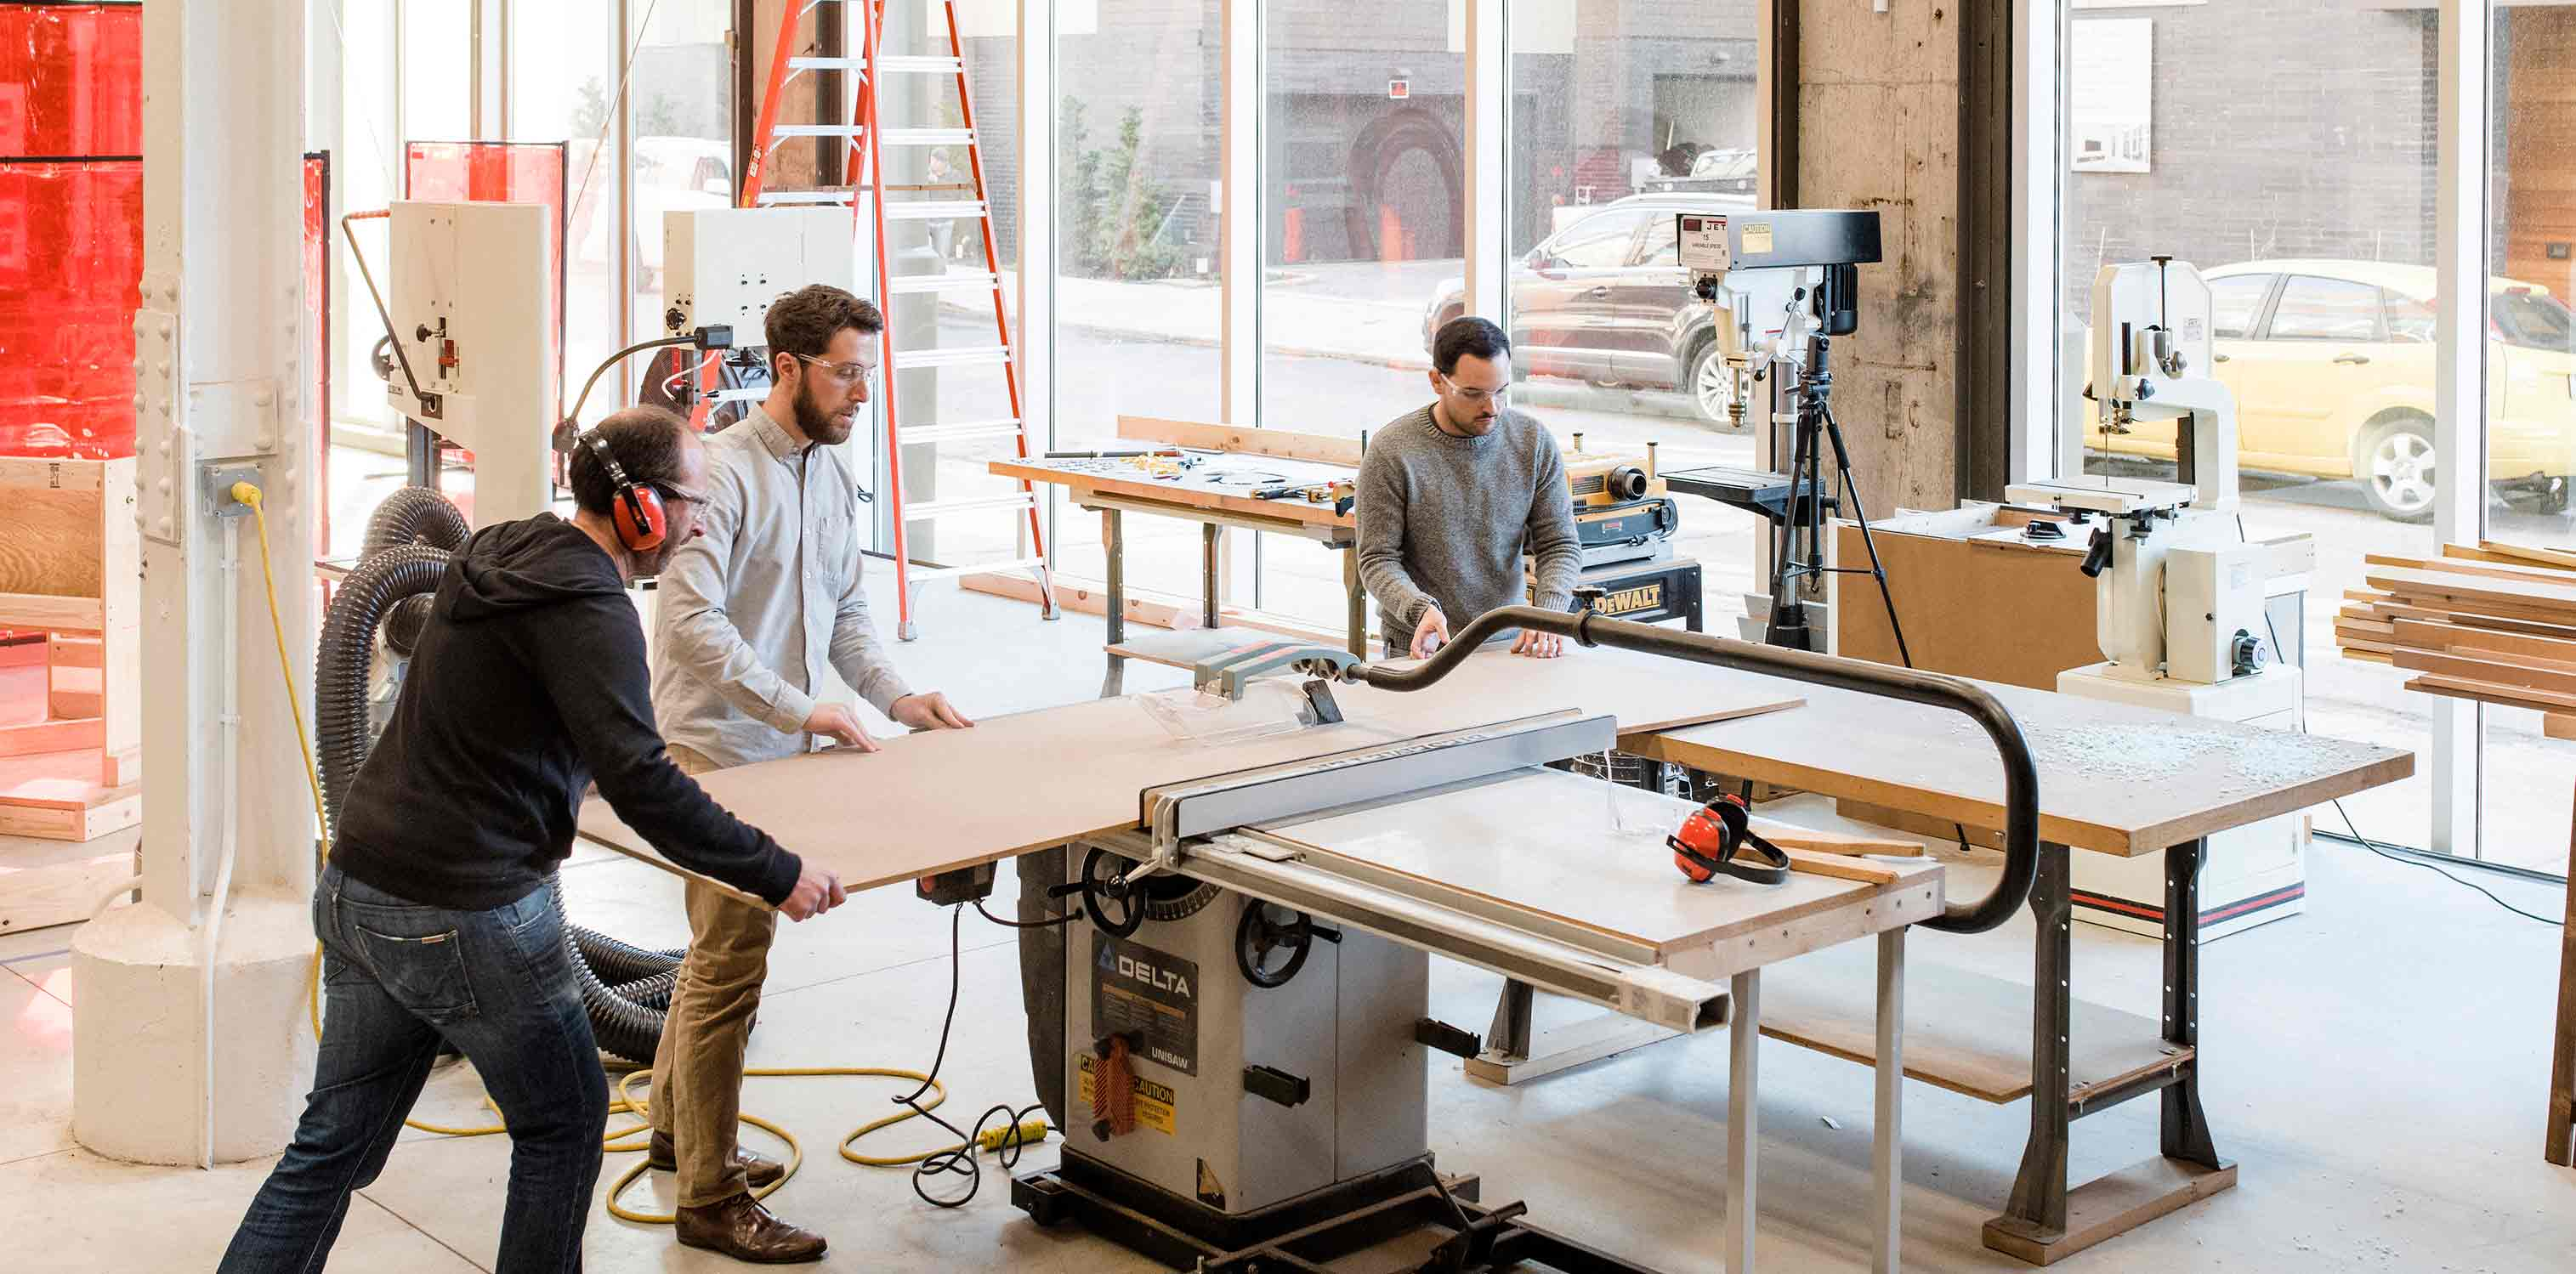 <p>The open workshop space fosters deeper investigation and collaboration between architects and researchers.<br> <br /><small>©Chris Leaman</small></p>